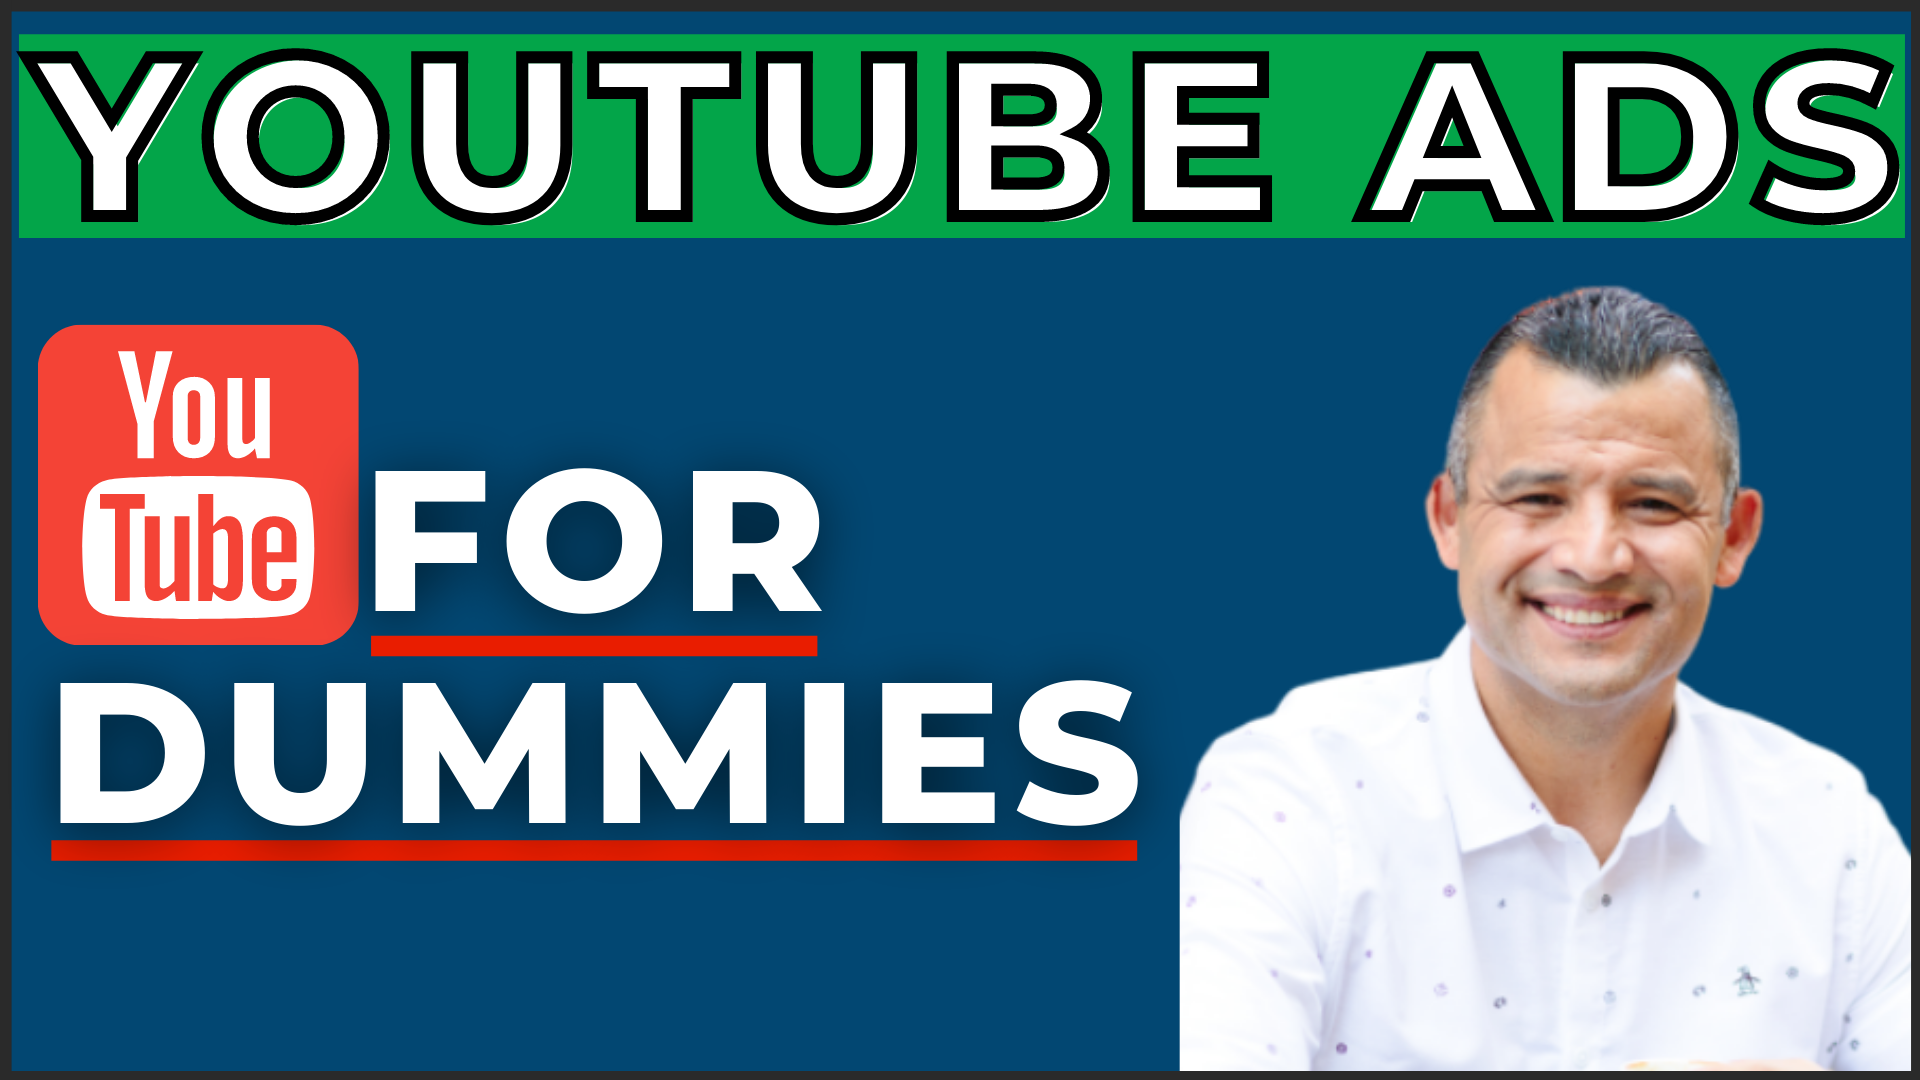 YOUTUBEADS FOR DUMMIES